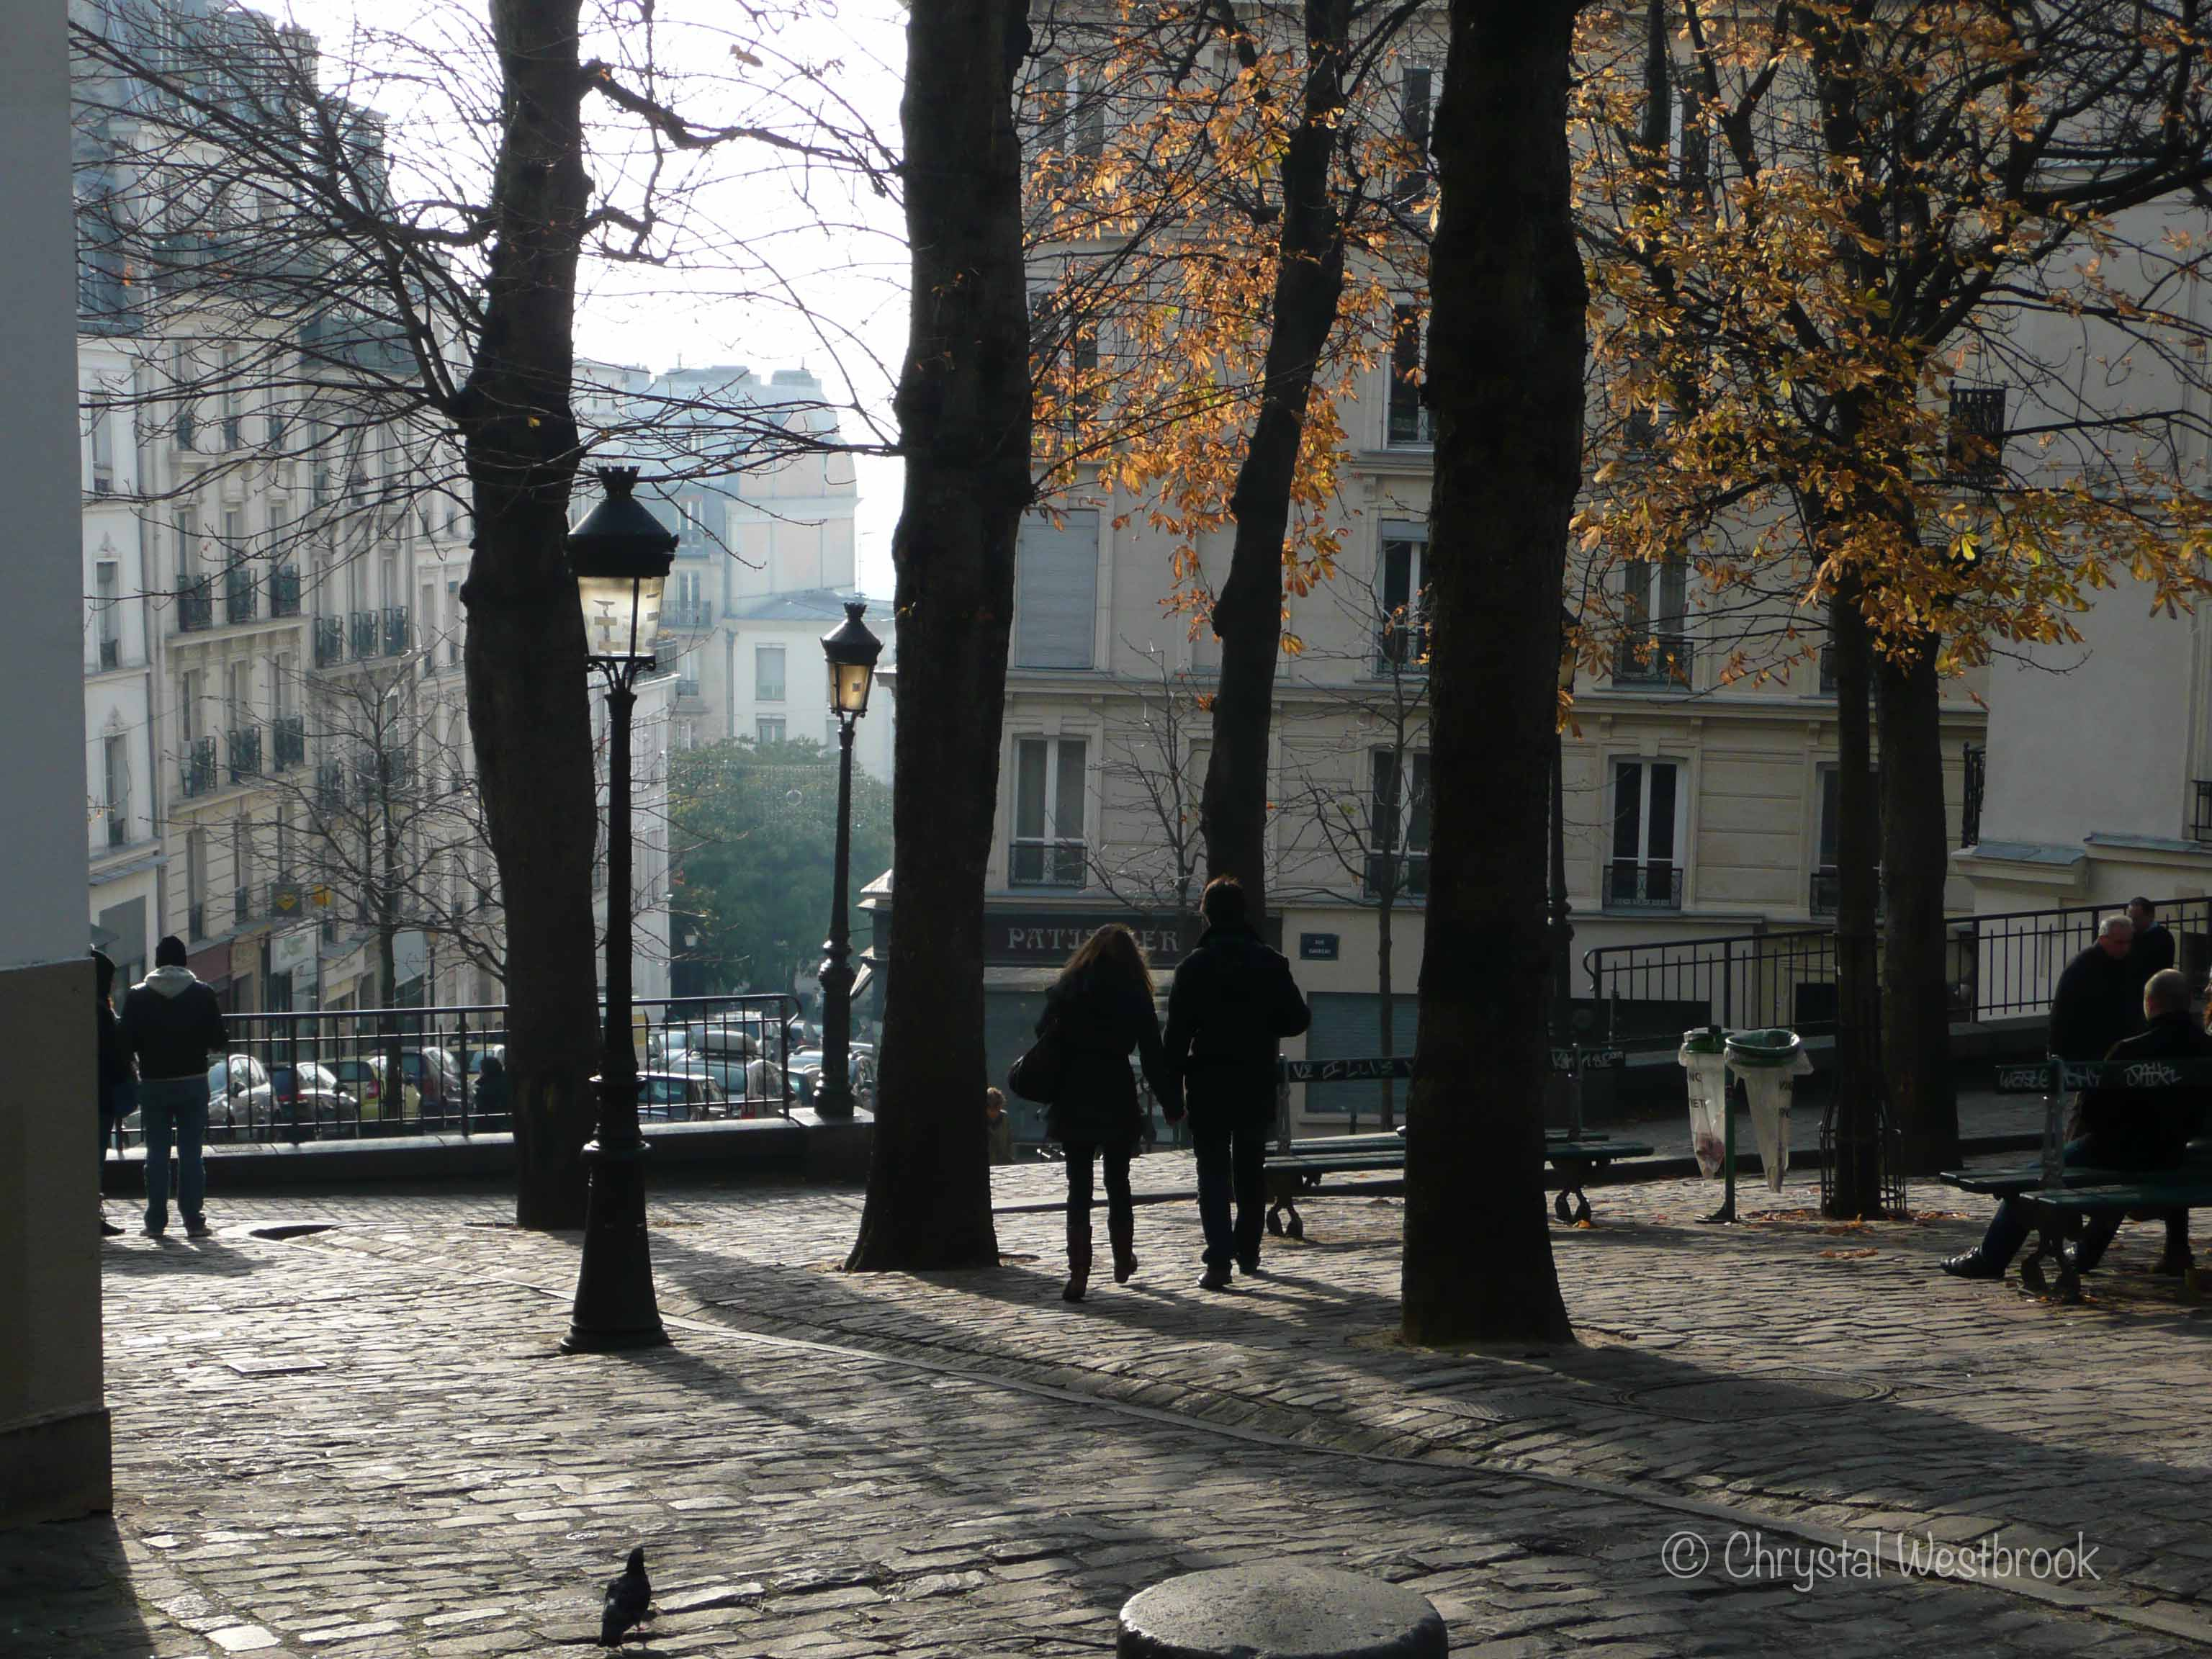 [IMAGE] Couple walking through a Paris square